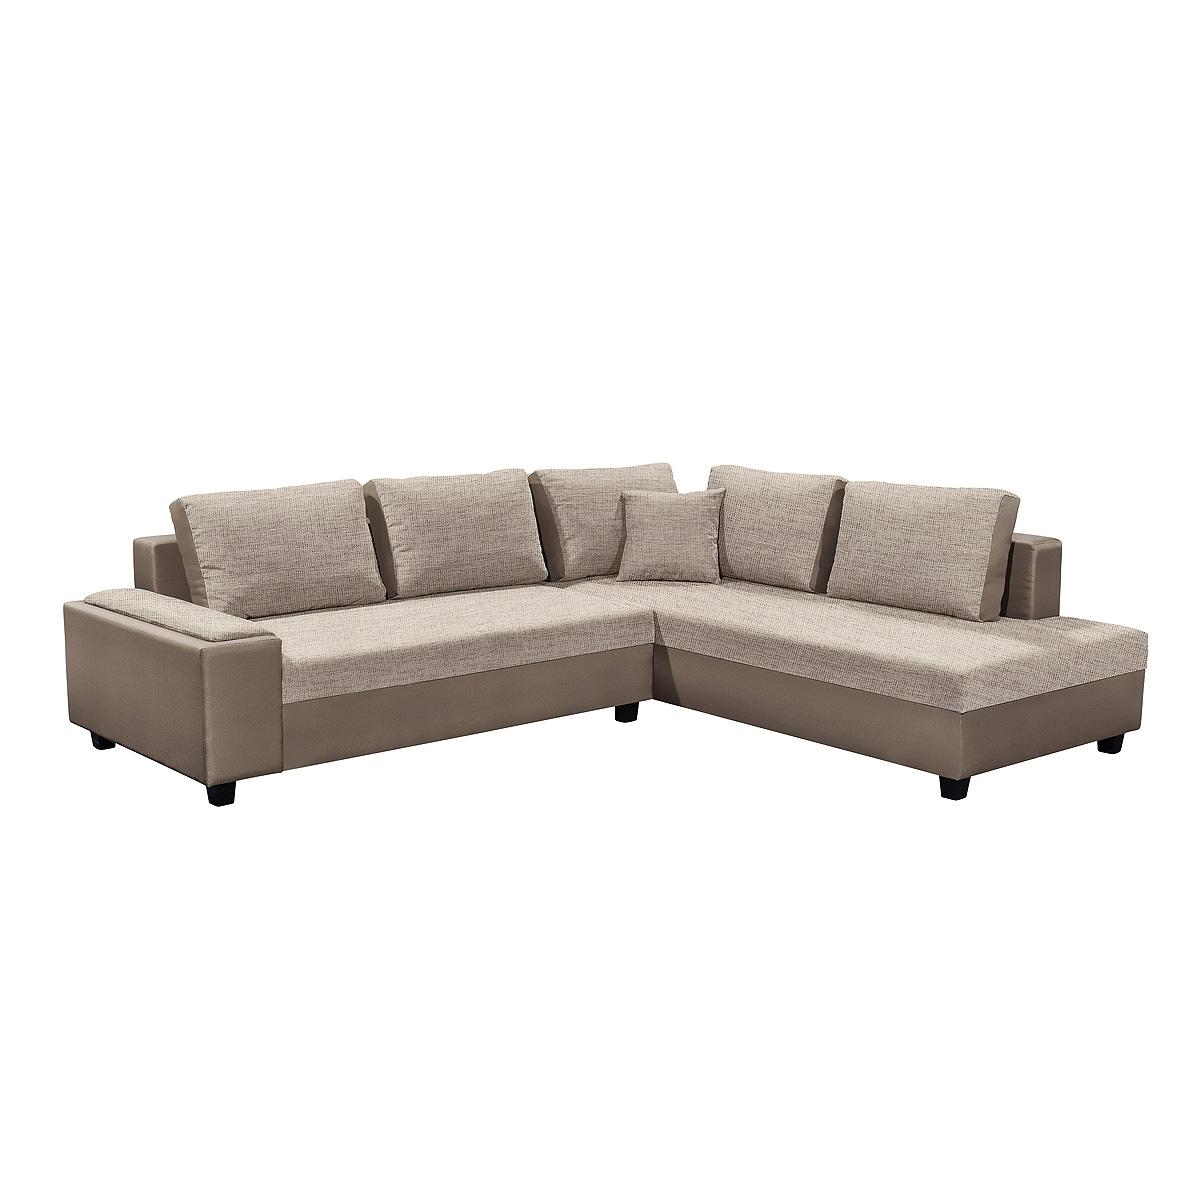 ecksofa ronny 2 wohnlandschaft sofa mit hocker in braun und beige ebay. Black Bedroom Furniture Sets. Home Design Ideas